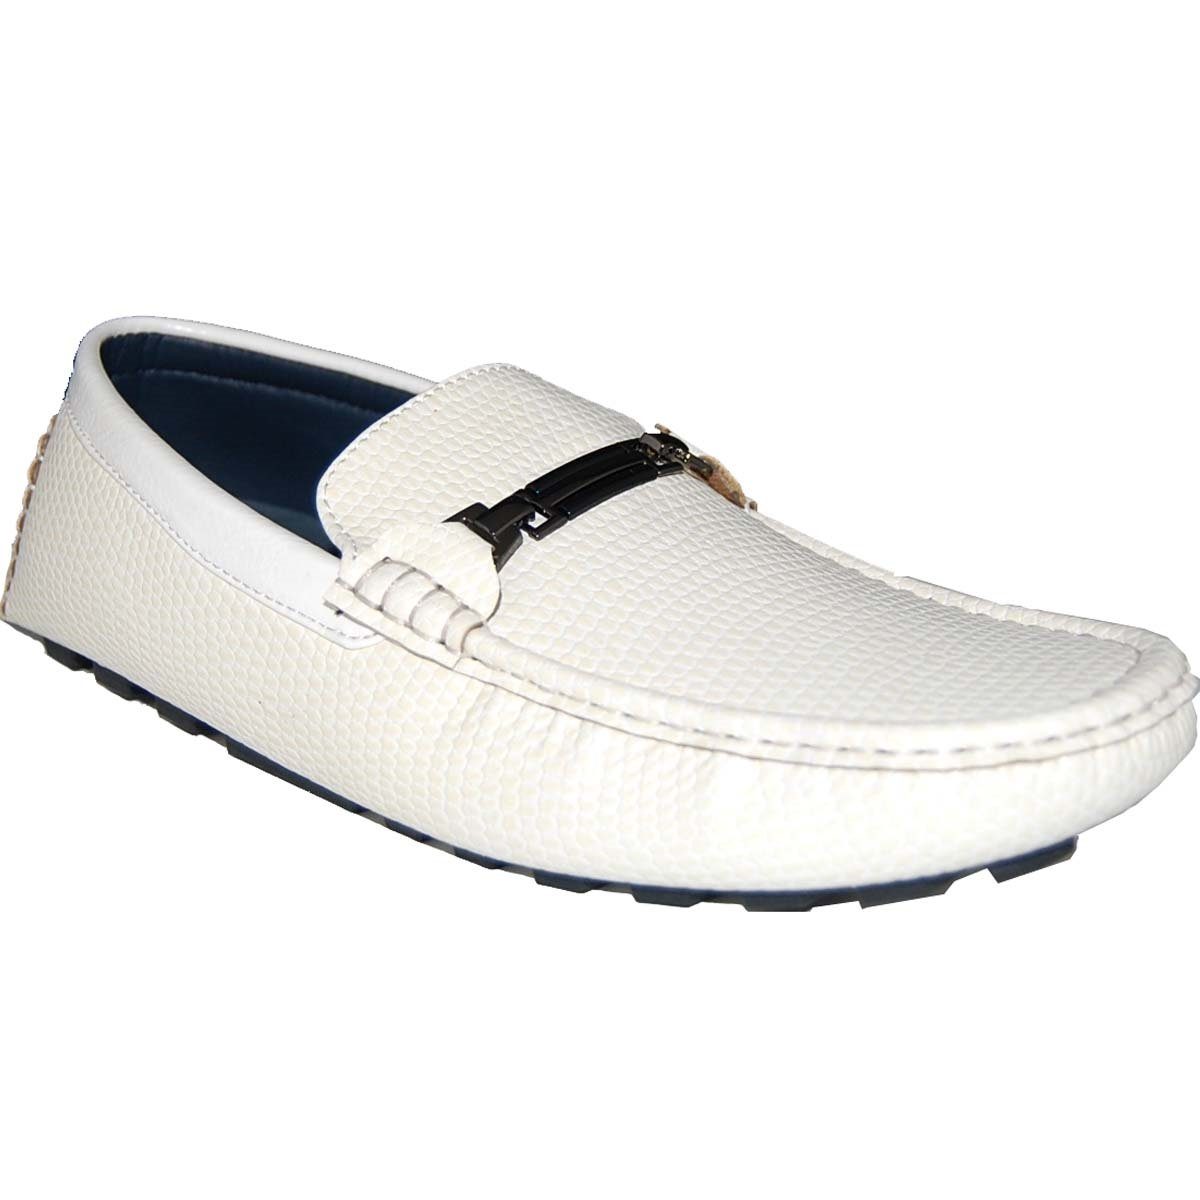 KRAZY SHOE ARTISTS Ultra-Fine Thin Leather Look White Men Penny Loafers -Size 9